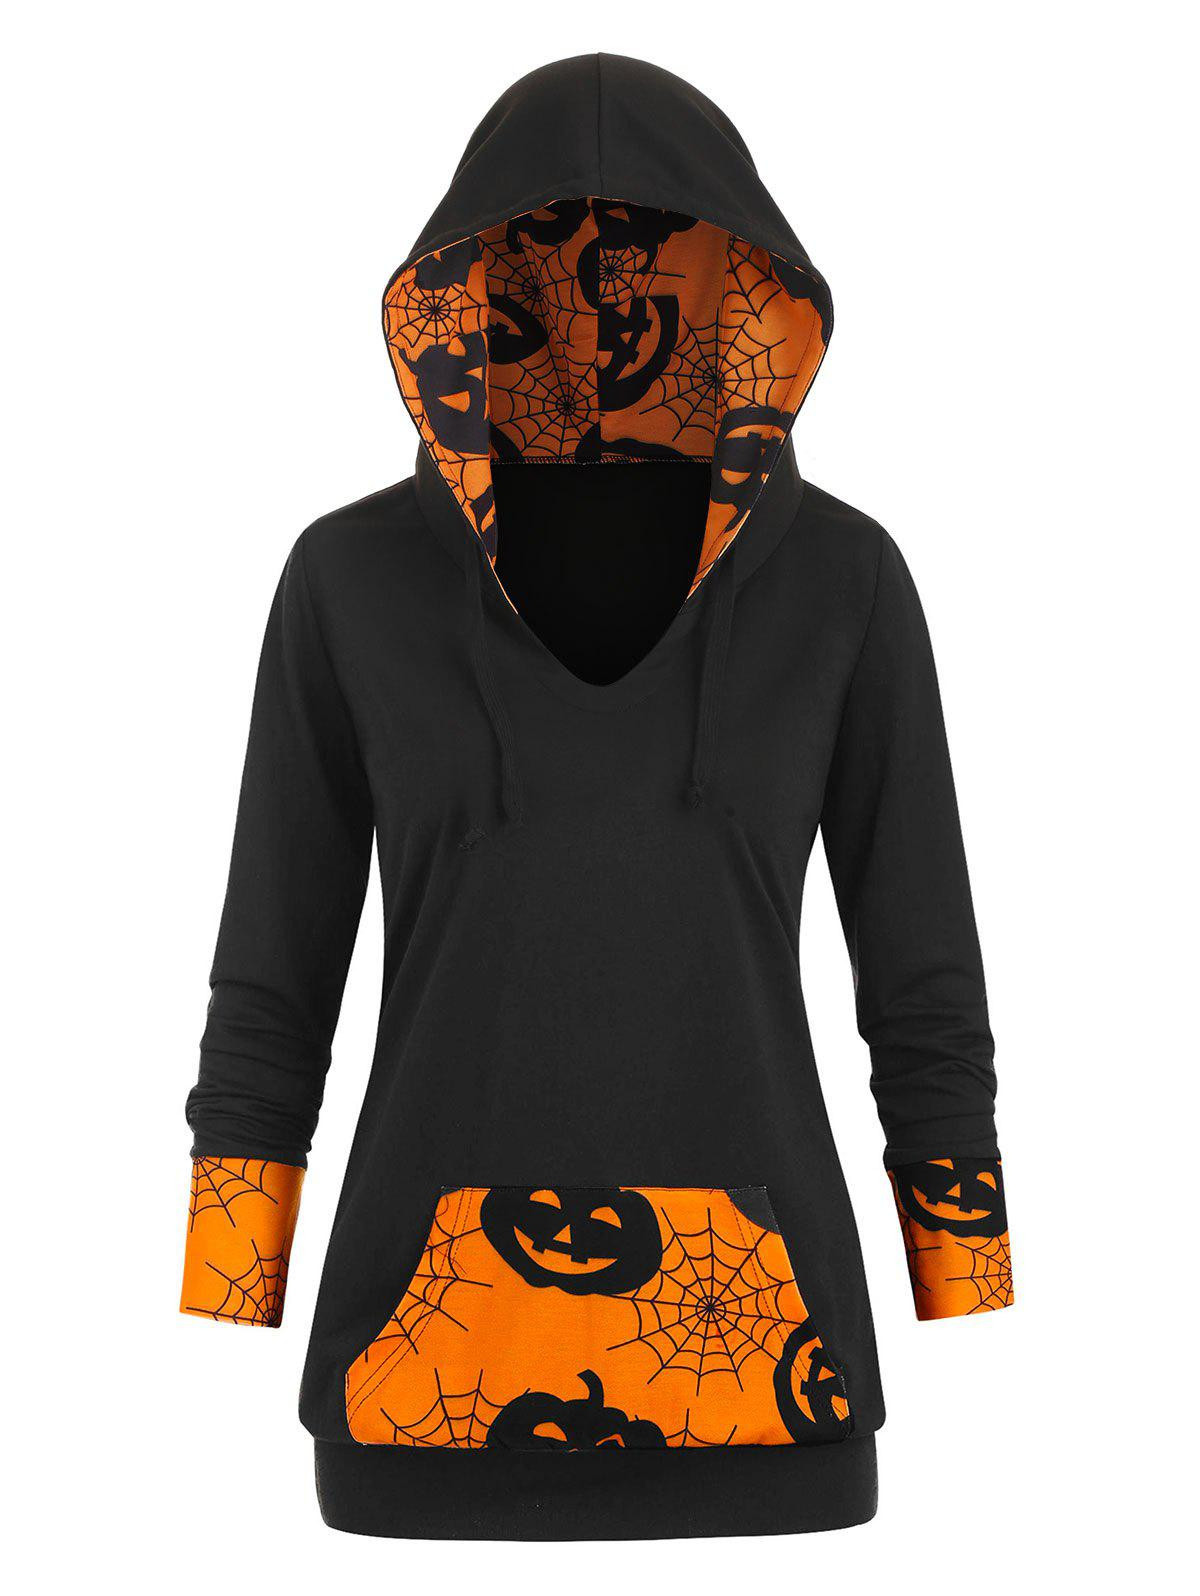 Cobwebs Pumpkin Front Pocket Halloween Plus Size Hoodie -